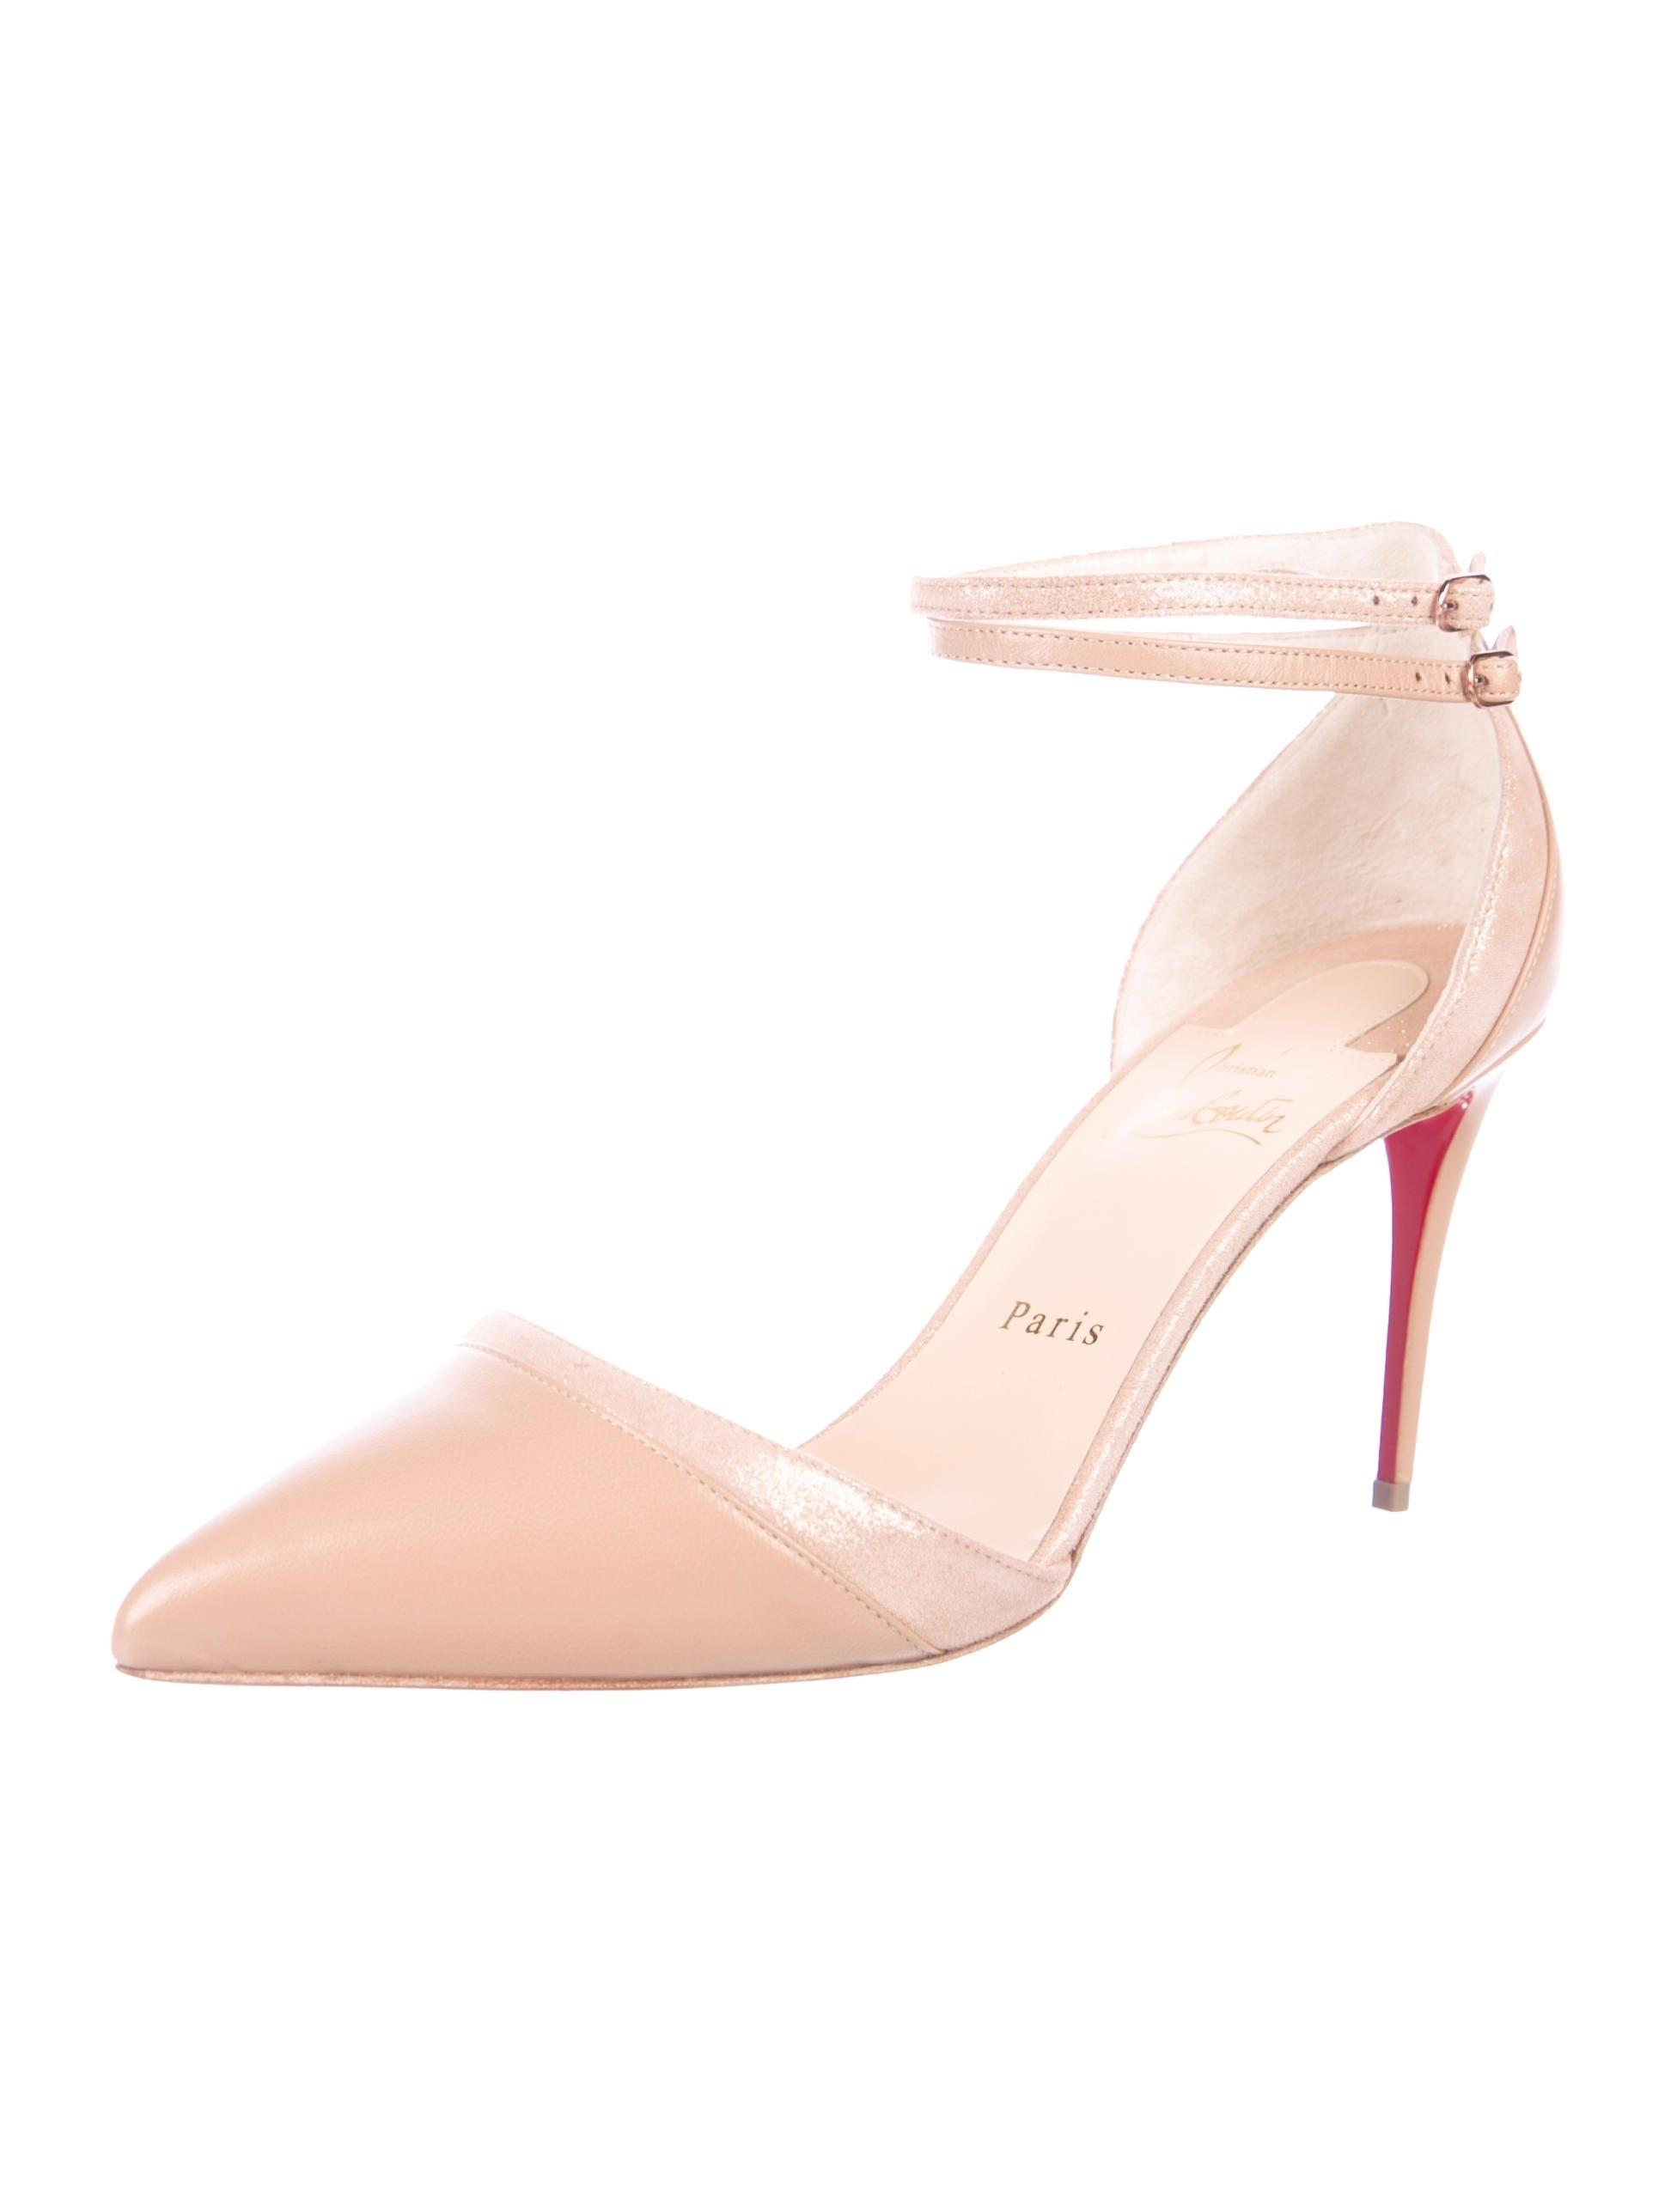 Christian Louboutin New Leather Ankle-strap Pumps Size EU 40.5 (Approx. US 10.5) Regular (M, B)